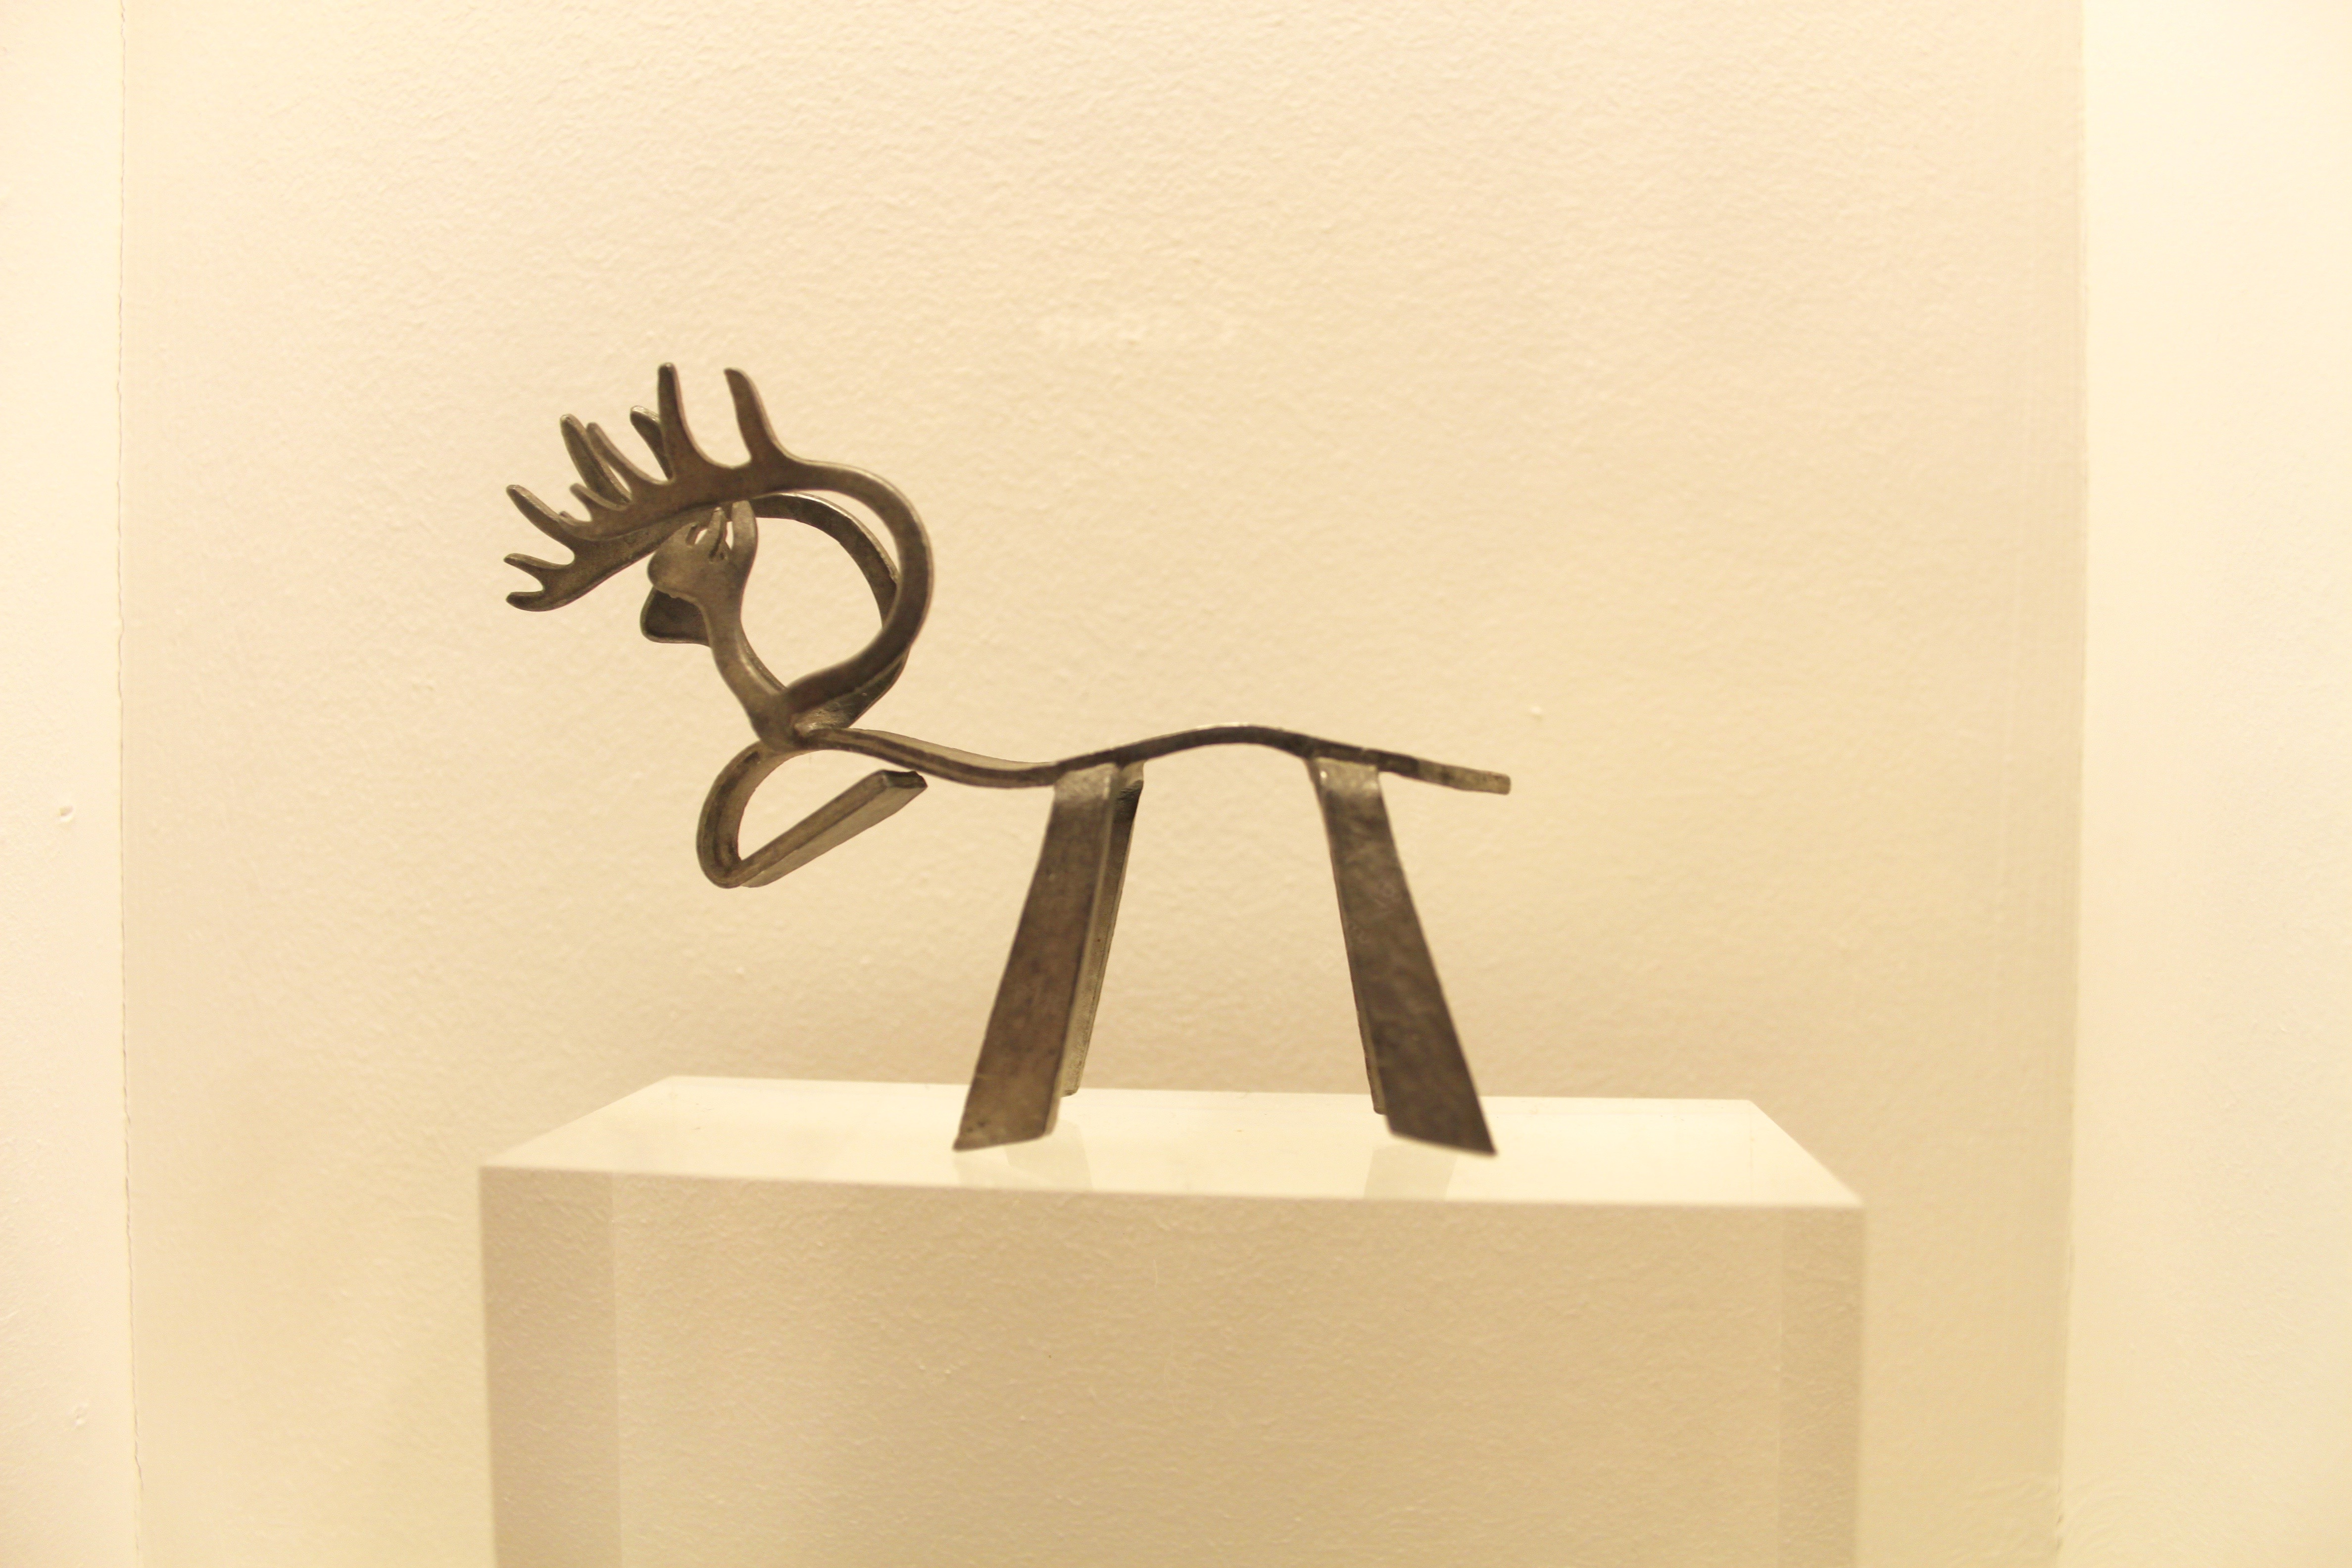 A small artistic elegant metal reindeer with a curved back and head, simple legs and intricate antlers on a small off-white podium with an off-white wall behind.